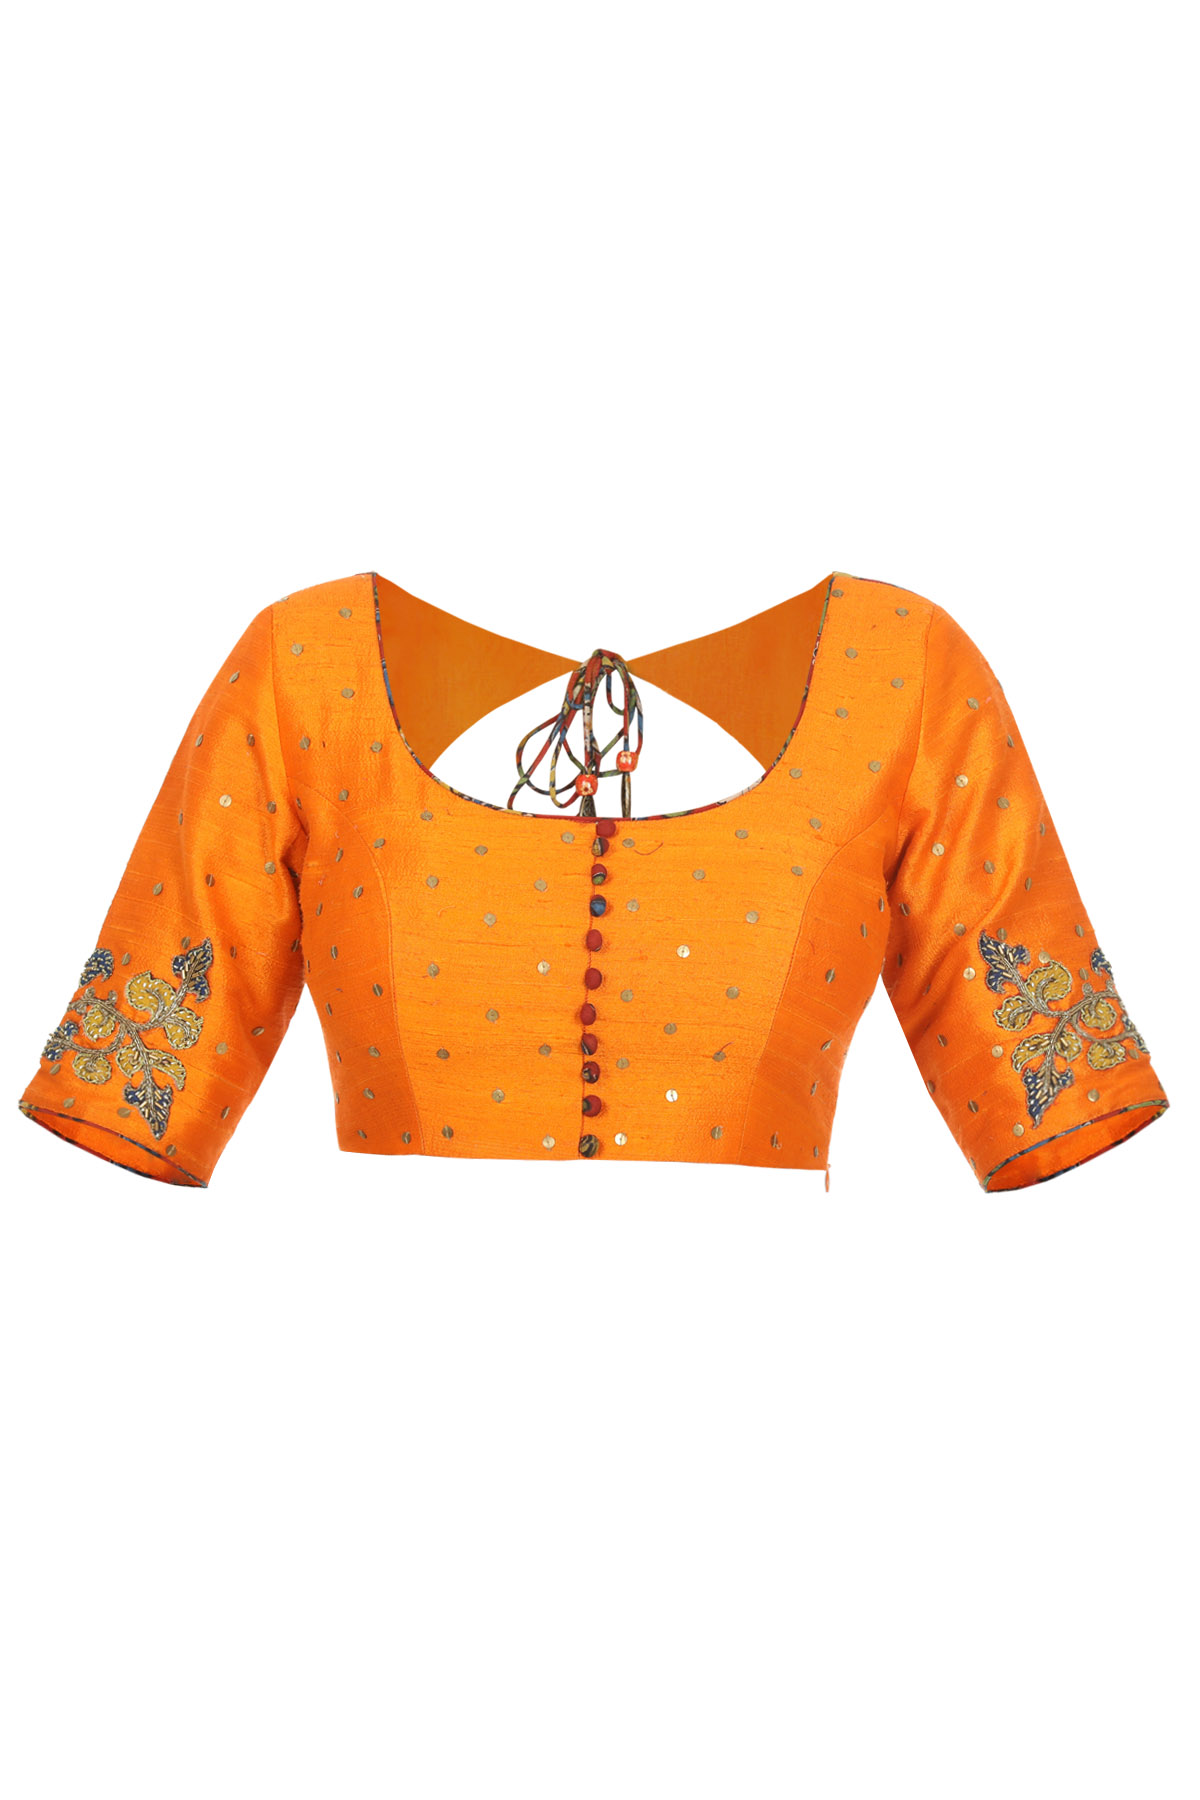 Orange Raw Silk Blouse With Embellished Sequins